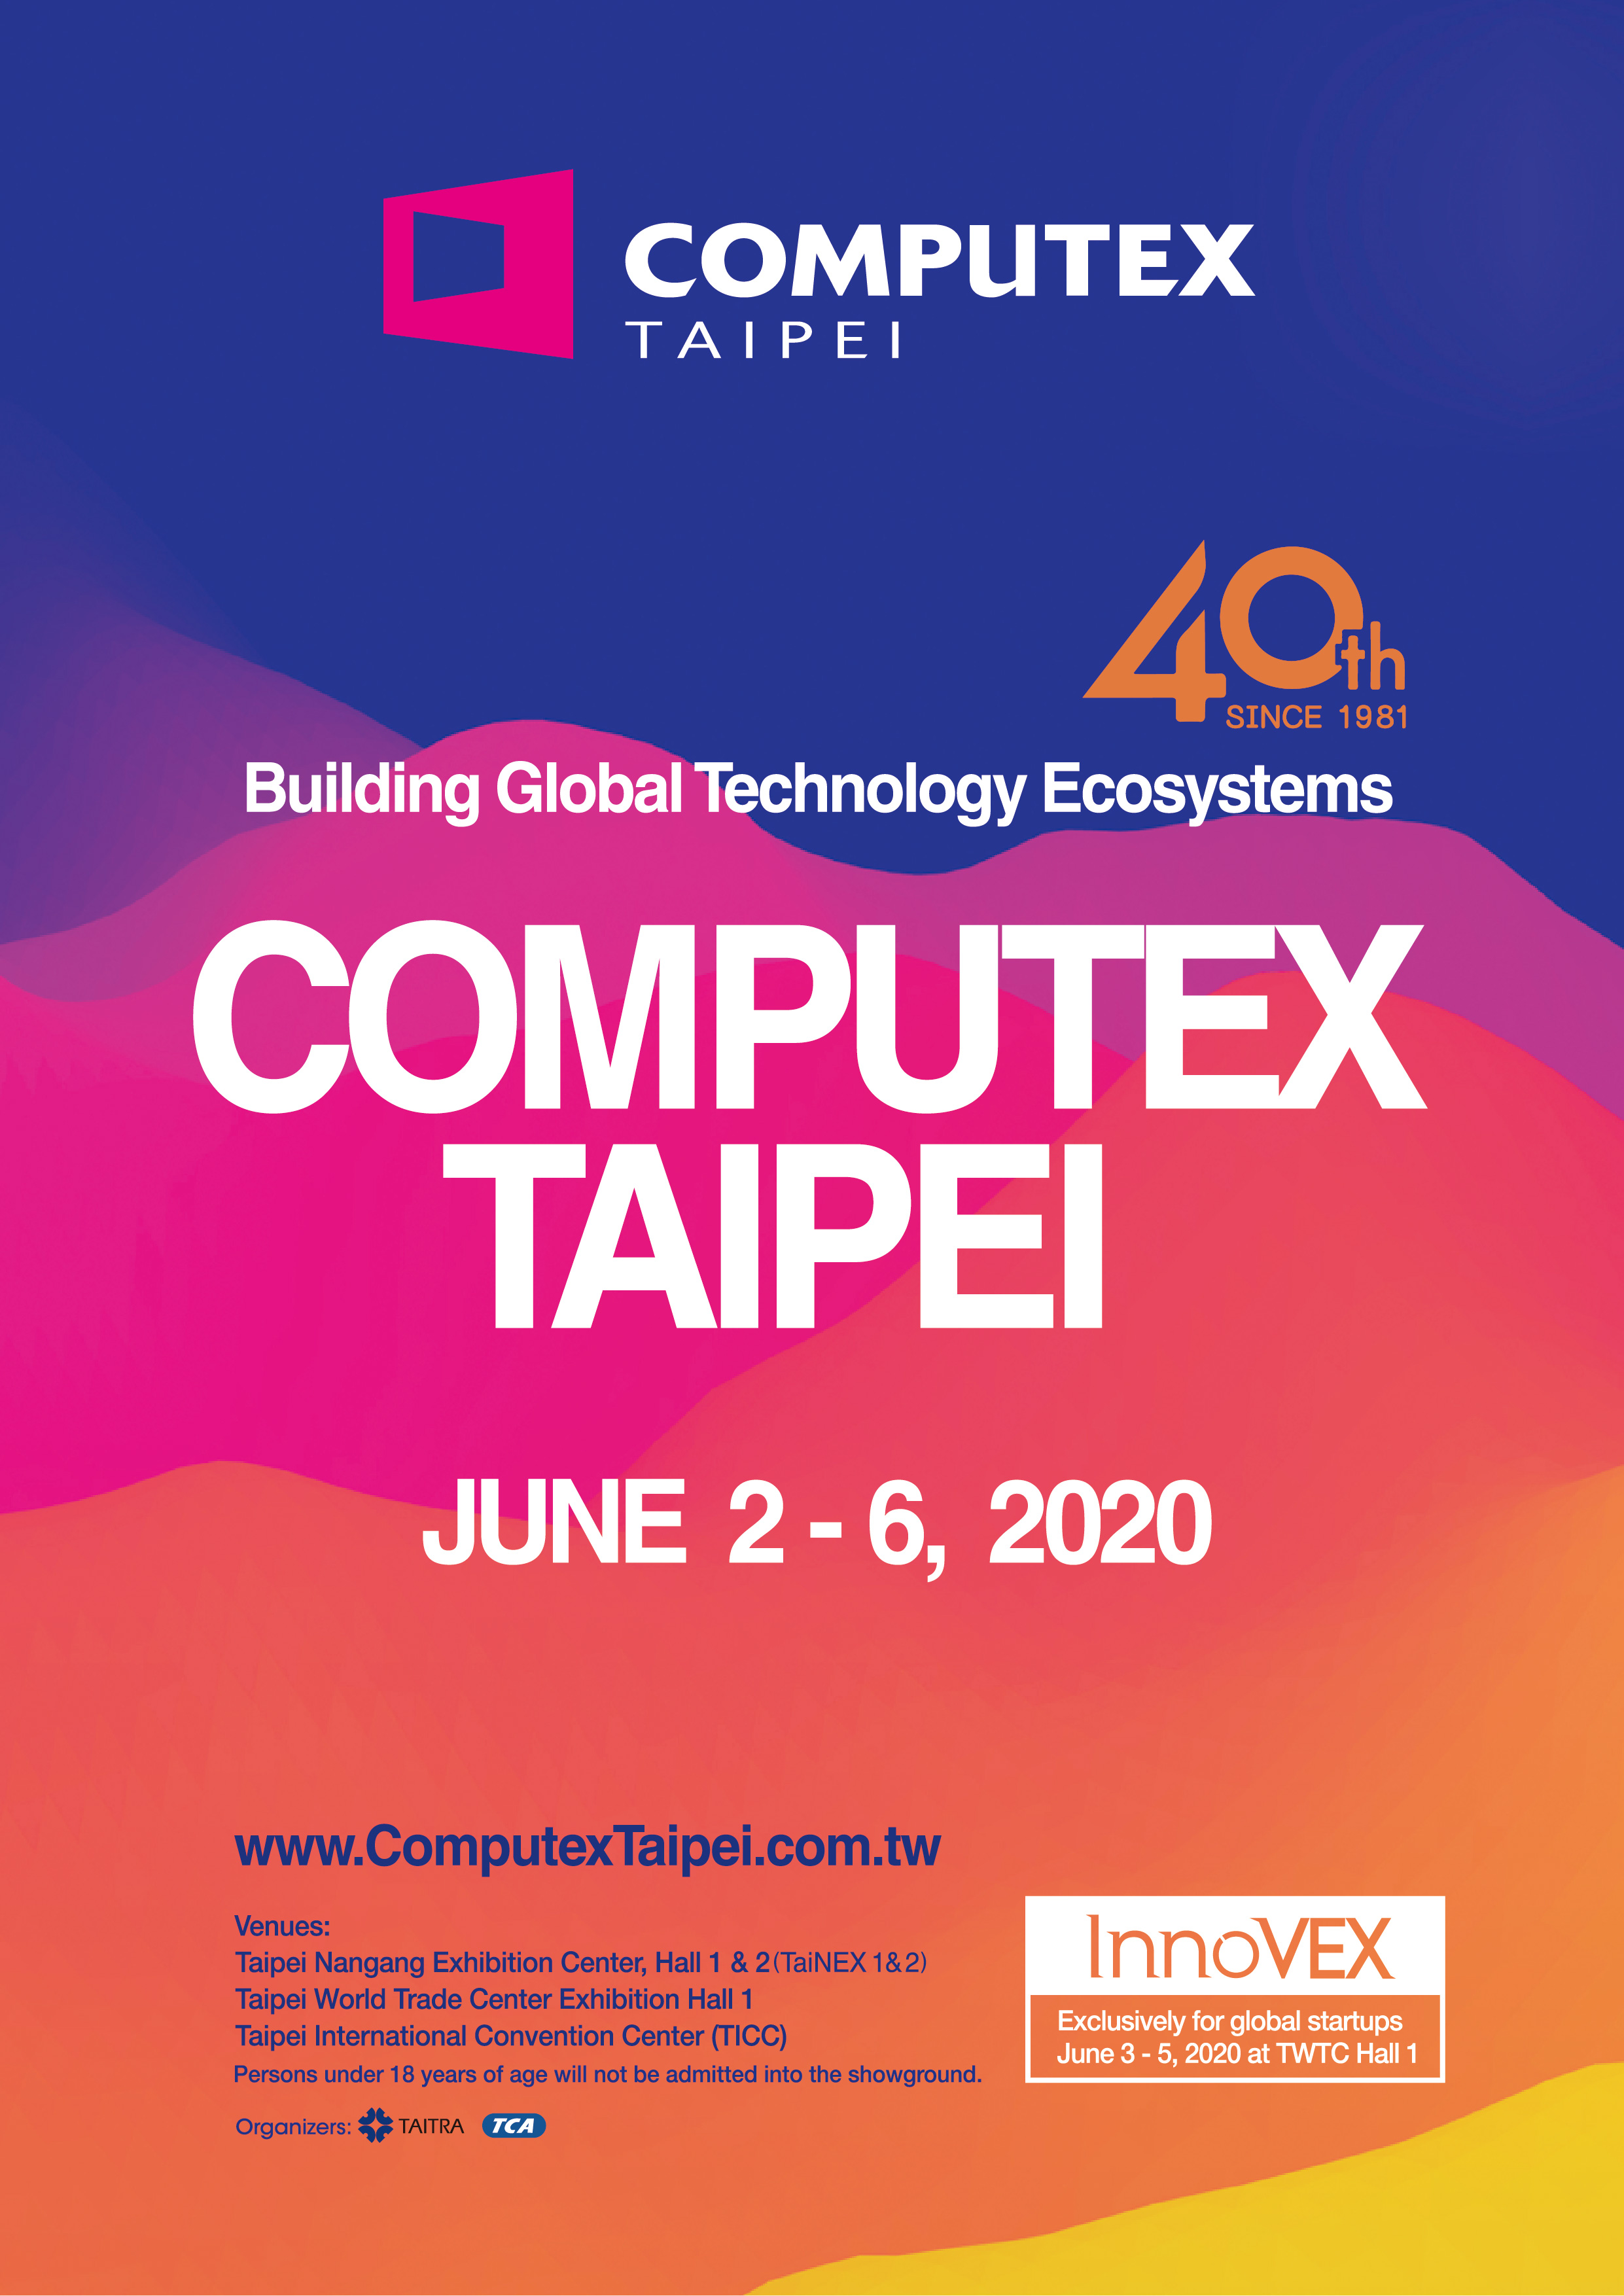 Globefan will exhibit in Computex Taipei 2020